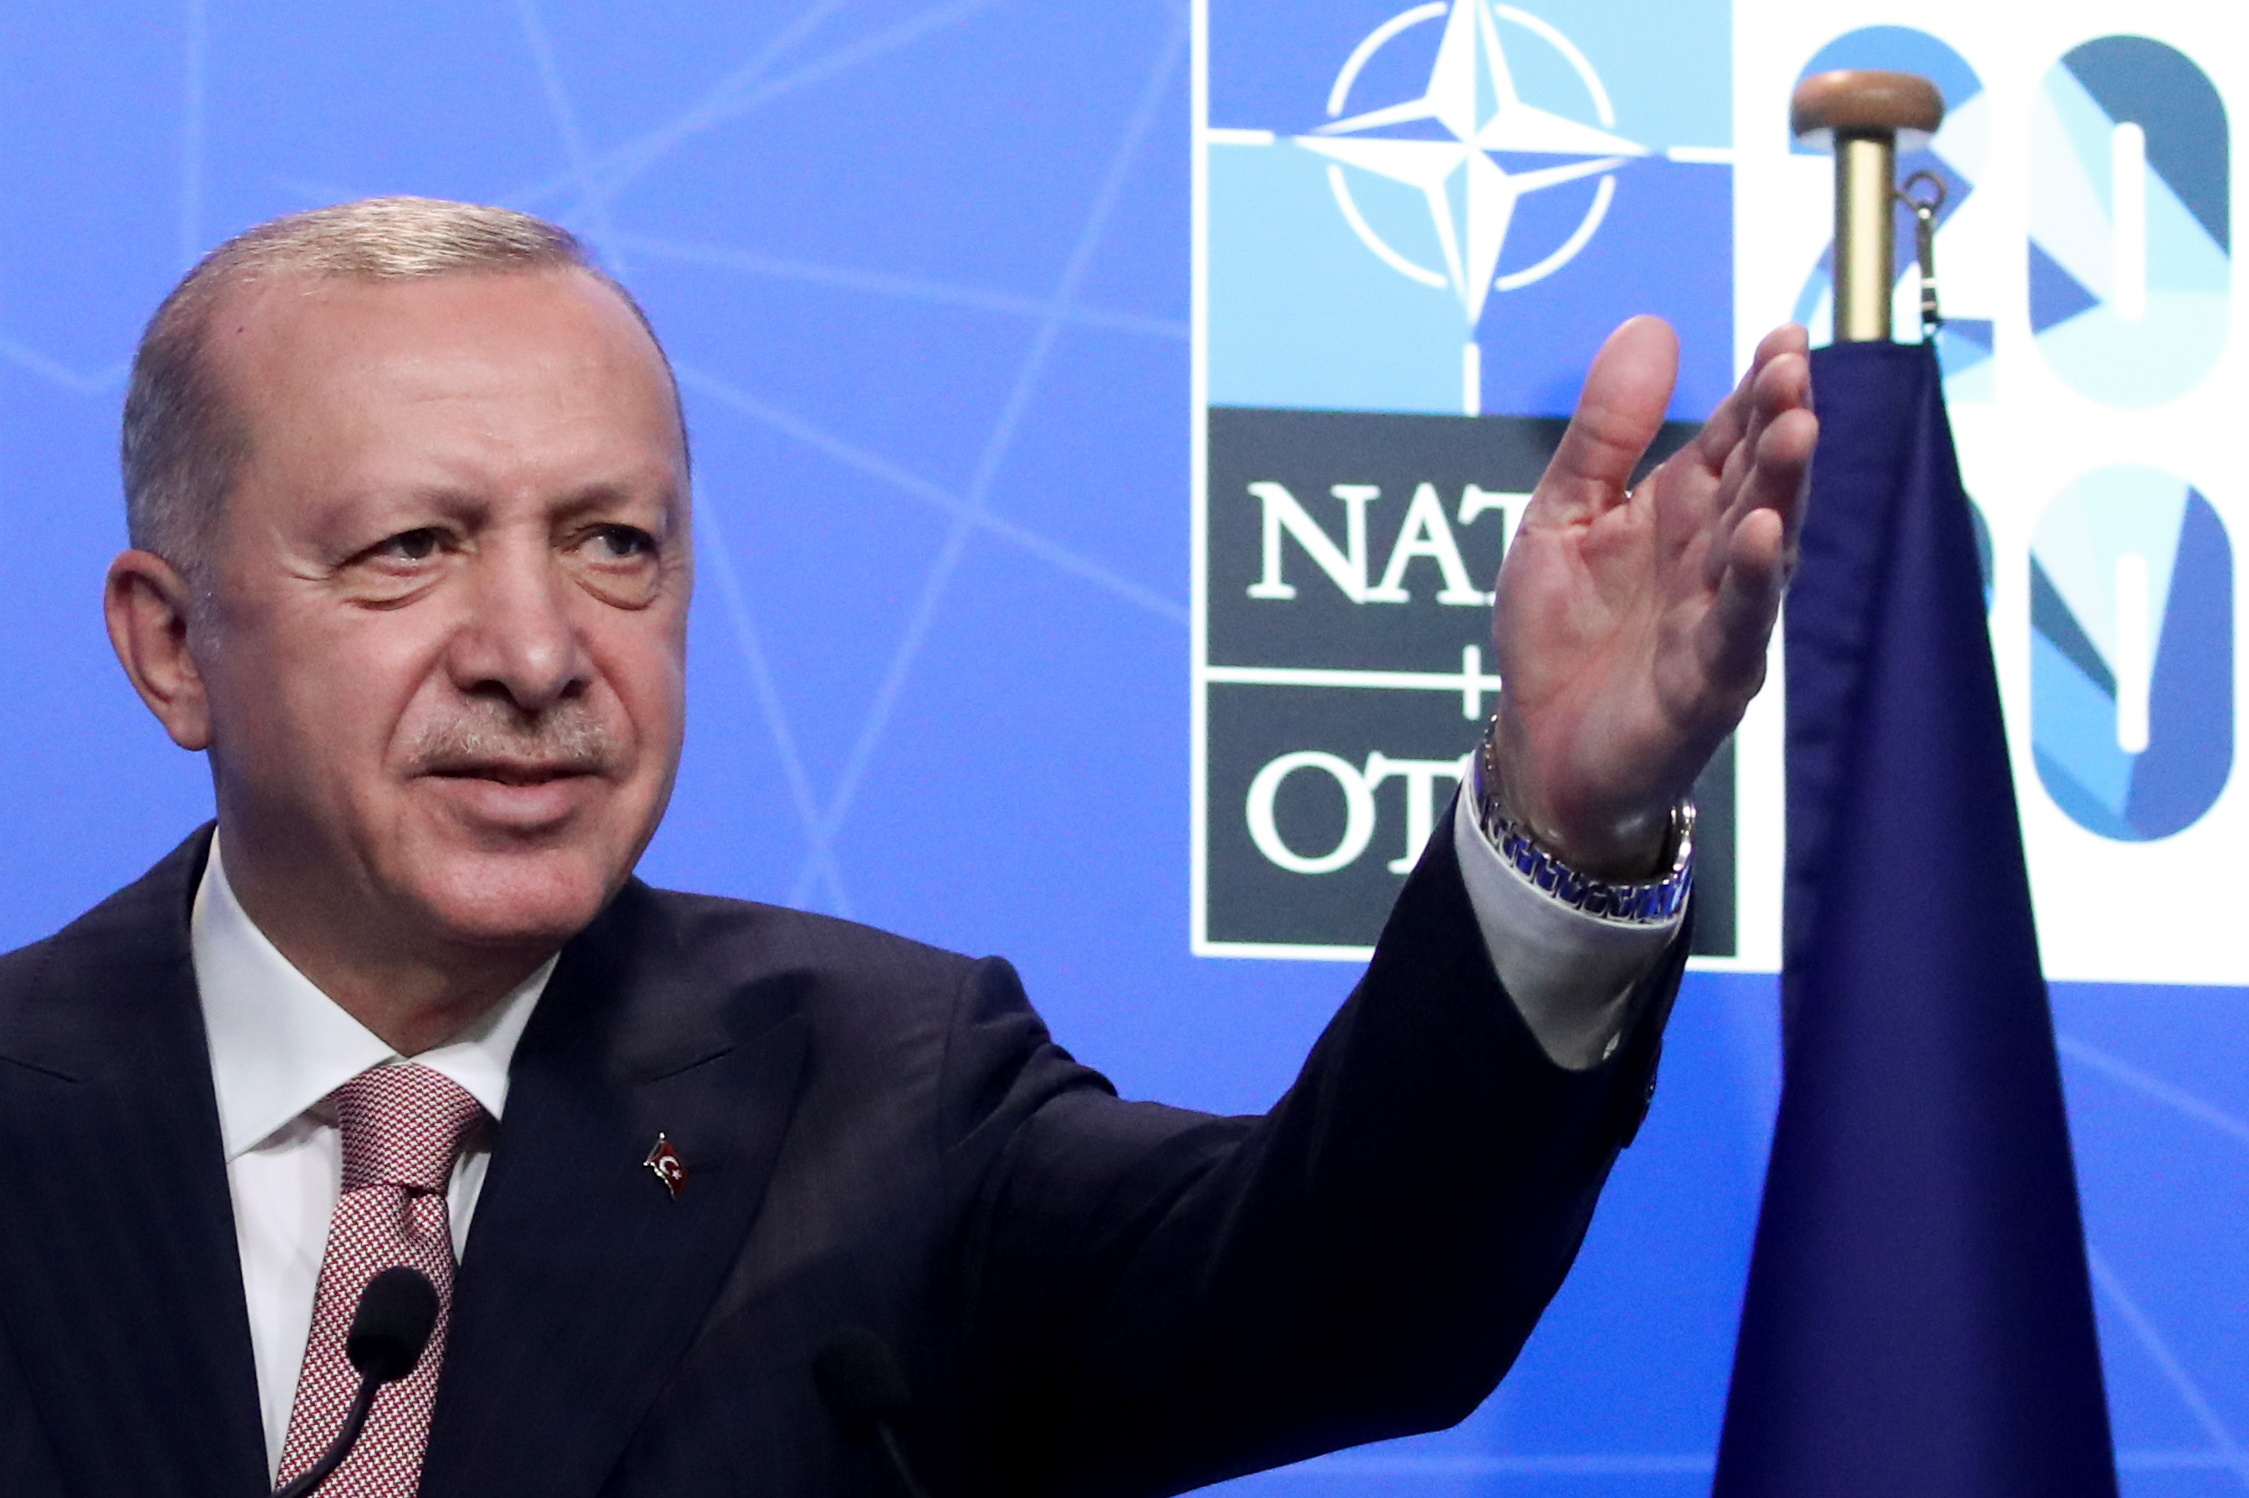 Turkey's President Tayyip Erdogan holds a news conference during the NATO summit at the Alliance's headquarters in Brussels, Belgium June 14, 2021. REUTERS/Yves Herman/Pool